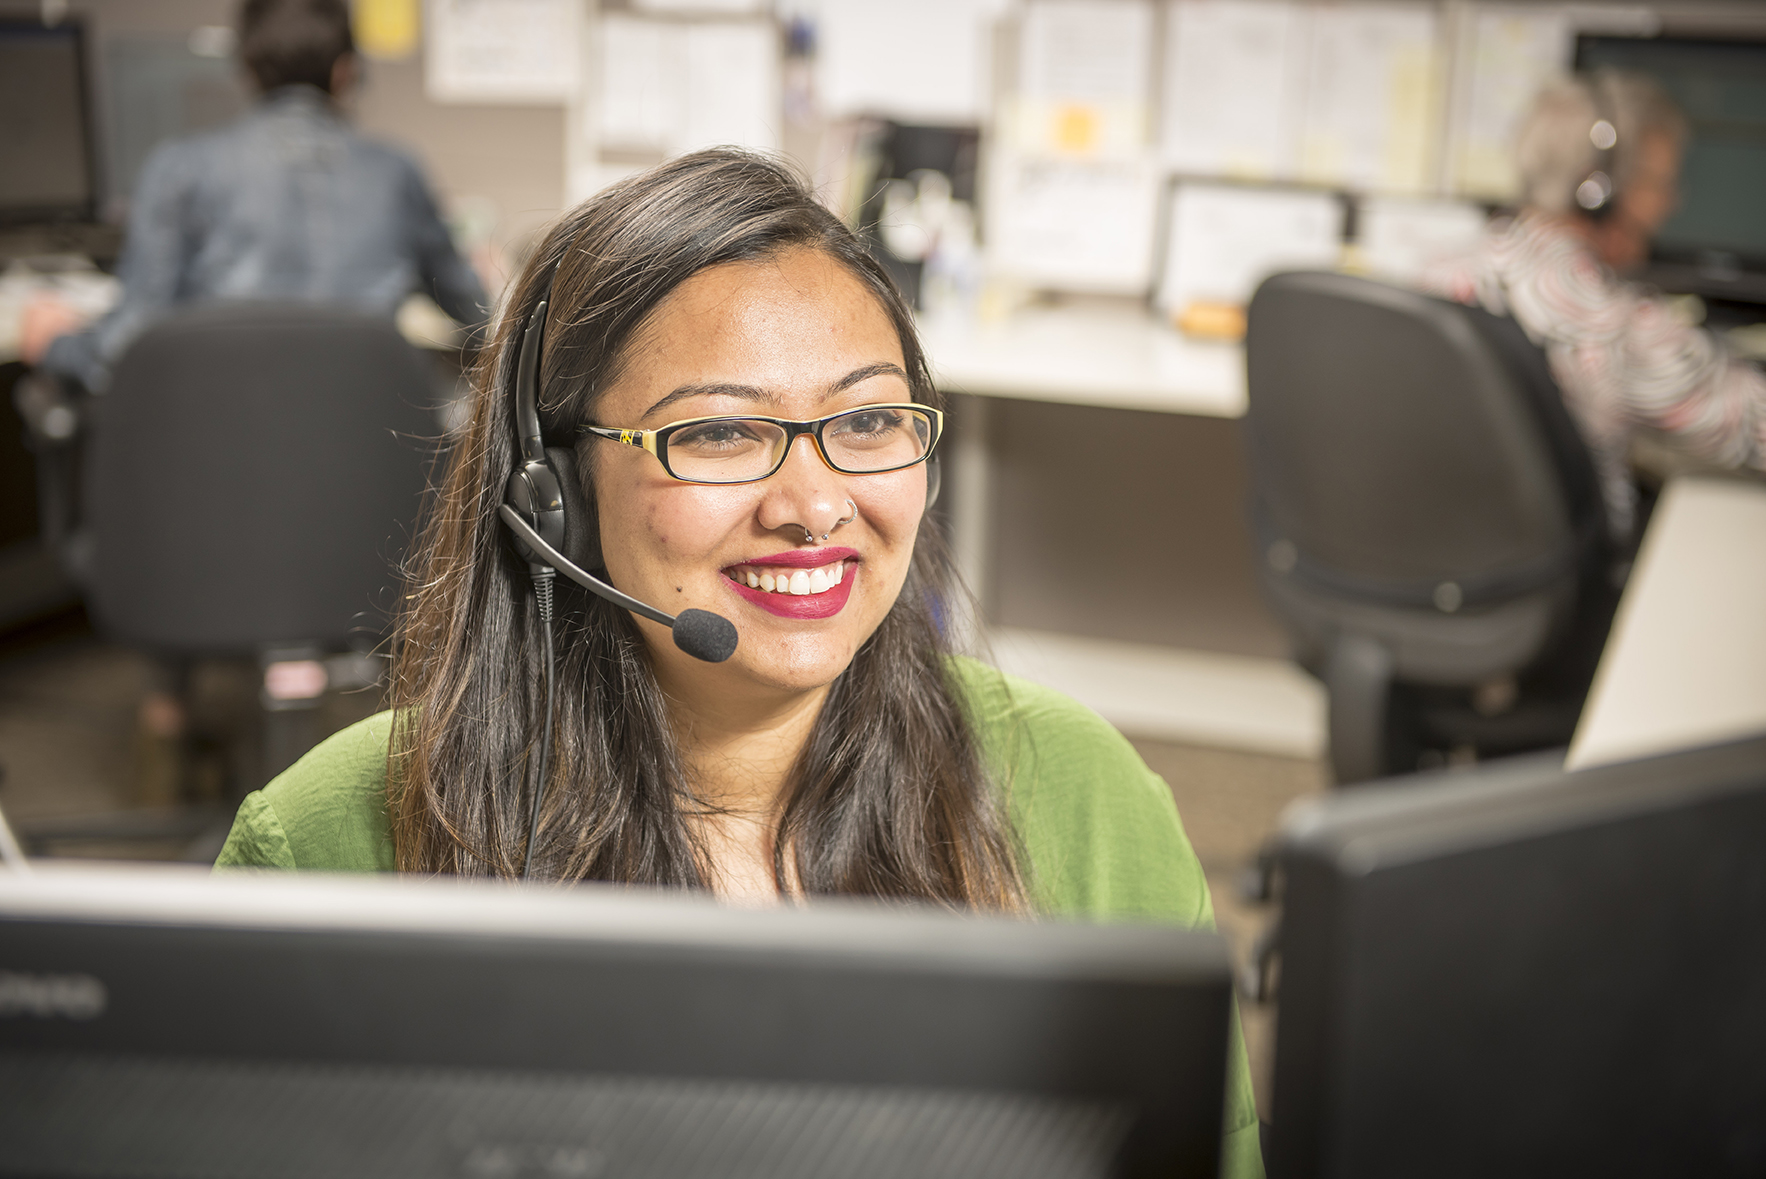 Smiling customer support representative with hands-free headset working in the office